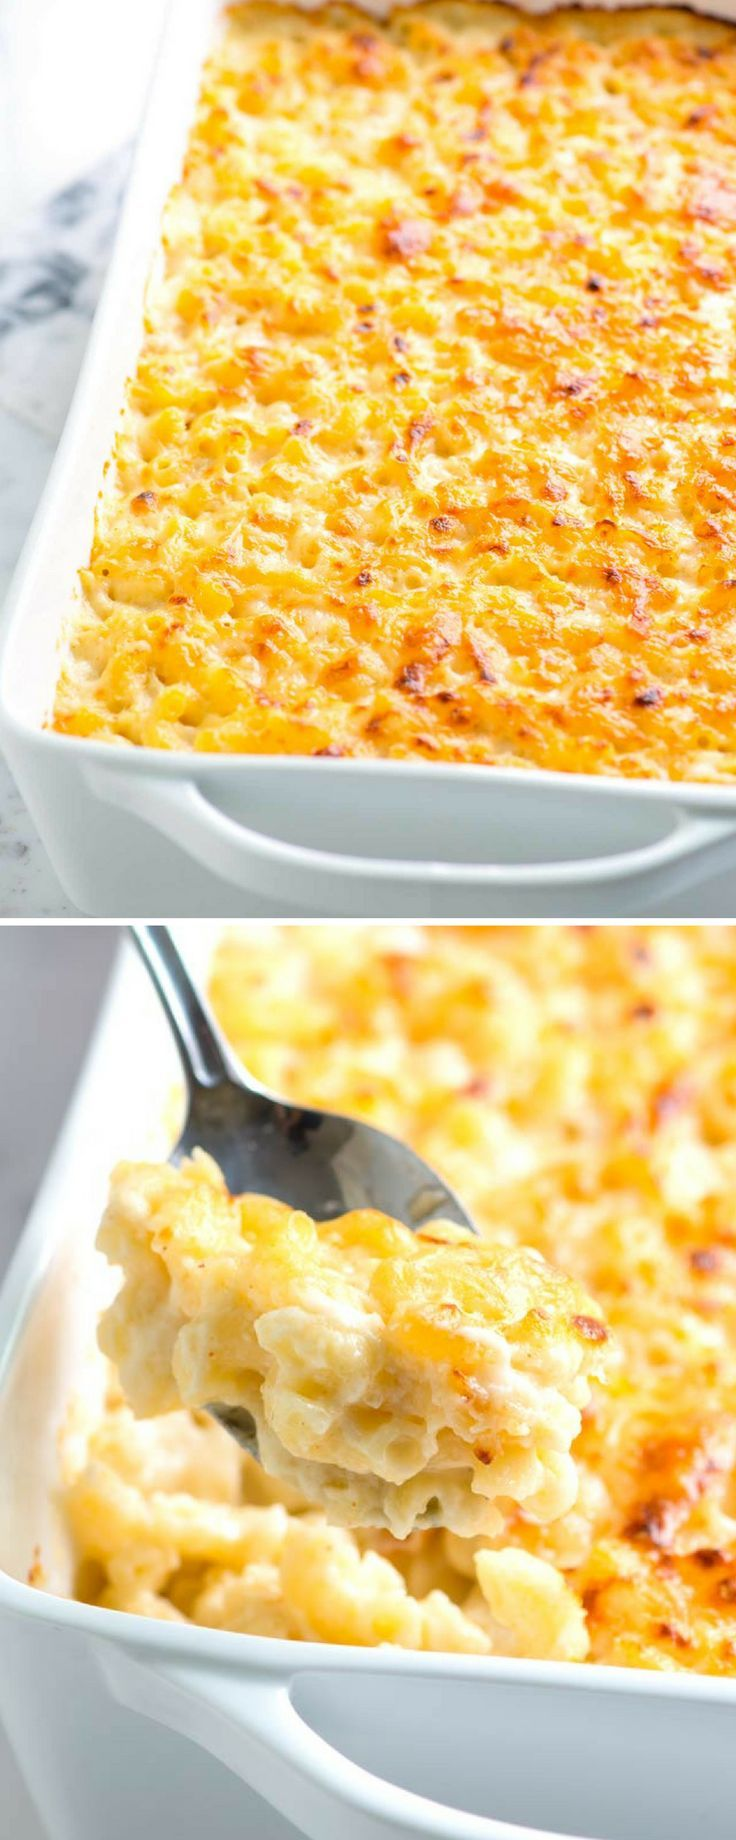 Ultra Creamy Baked Mac and Cheese images